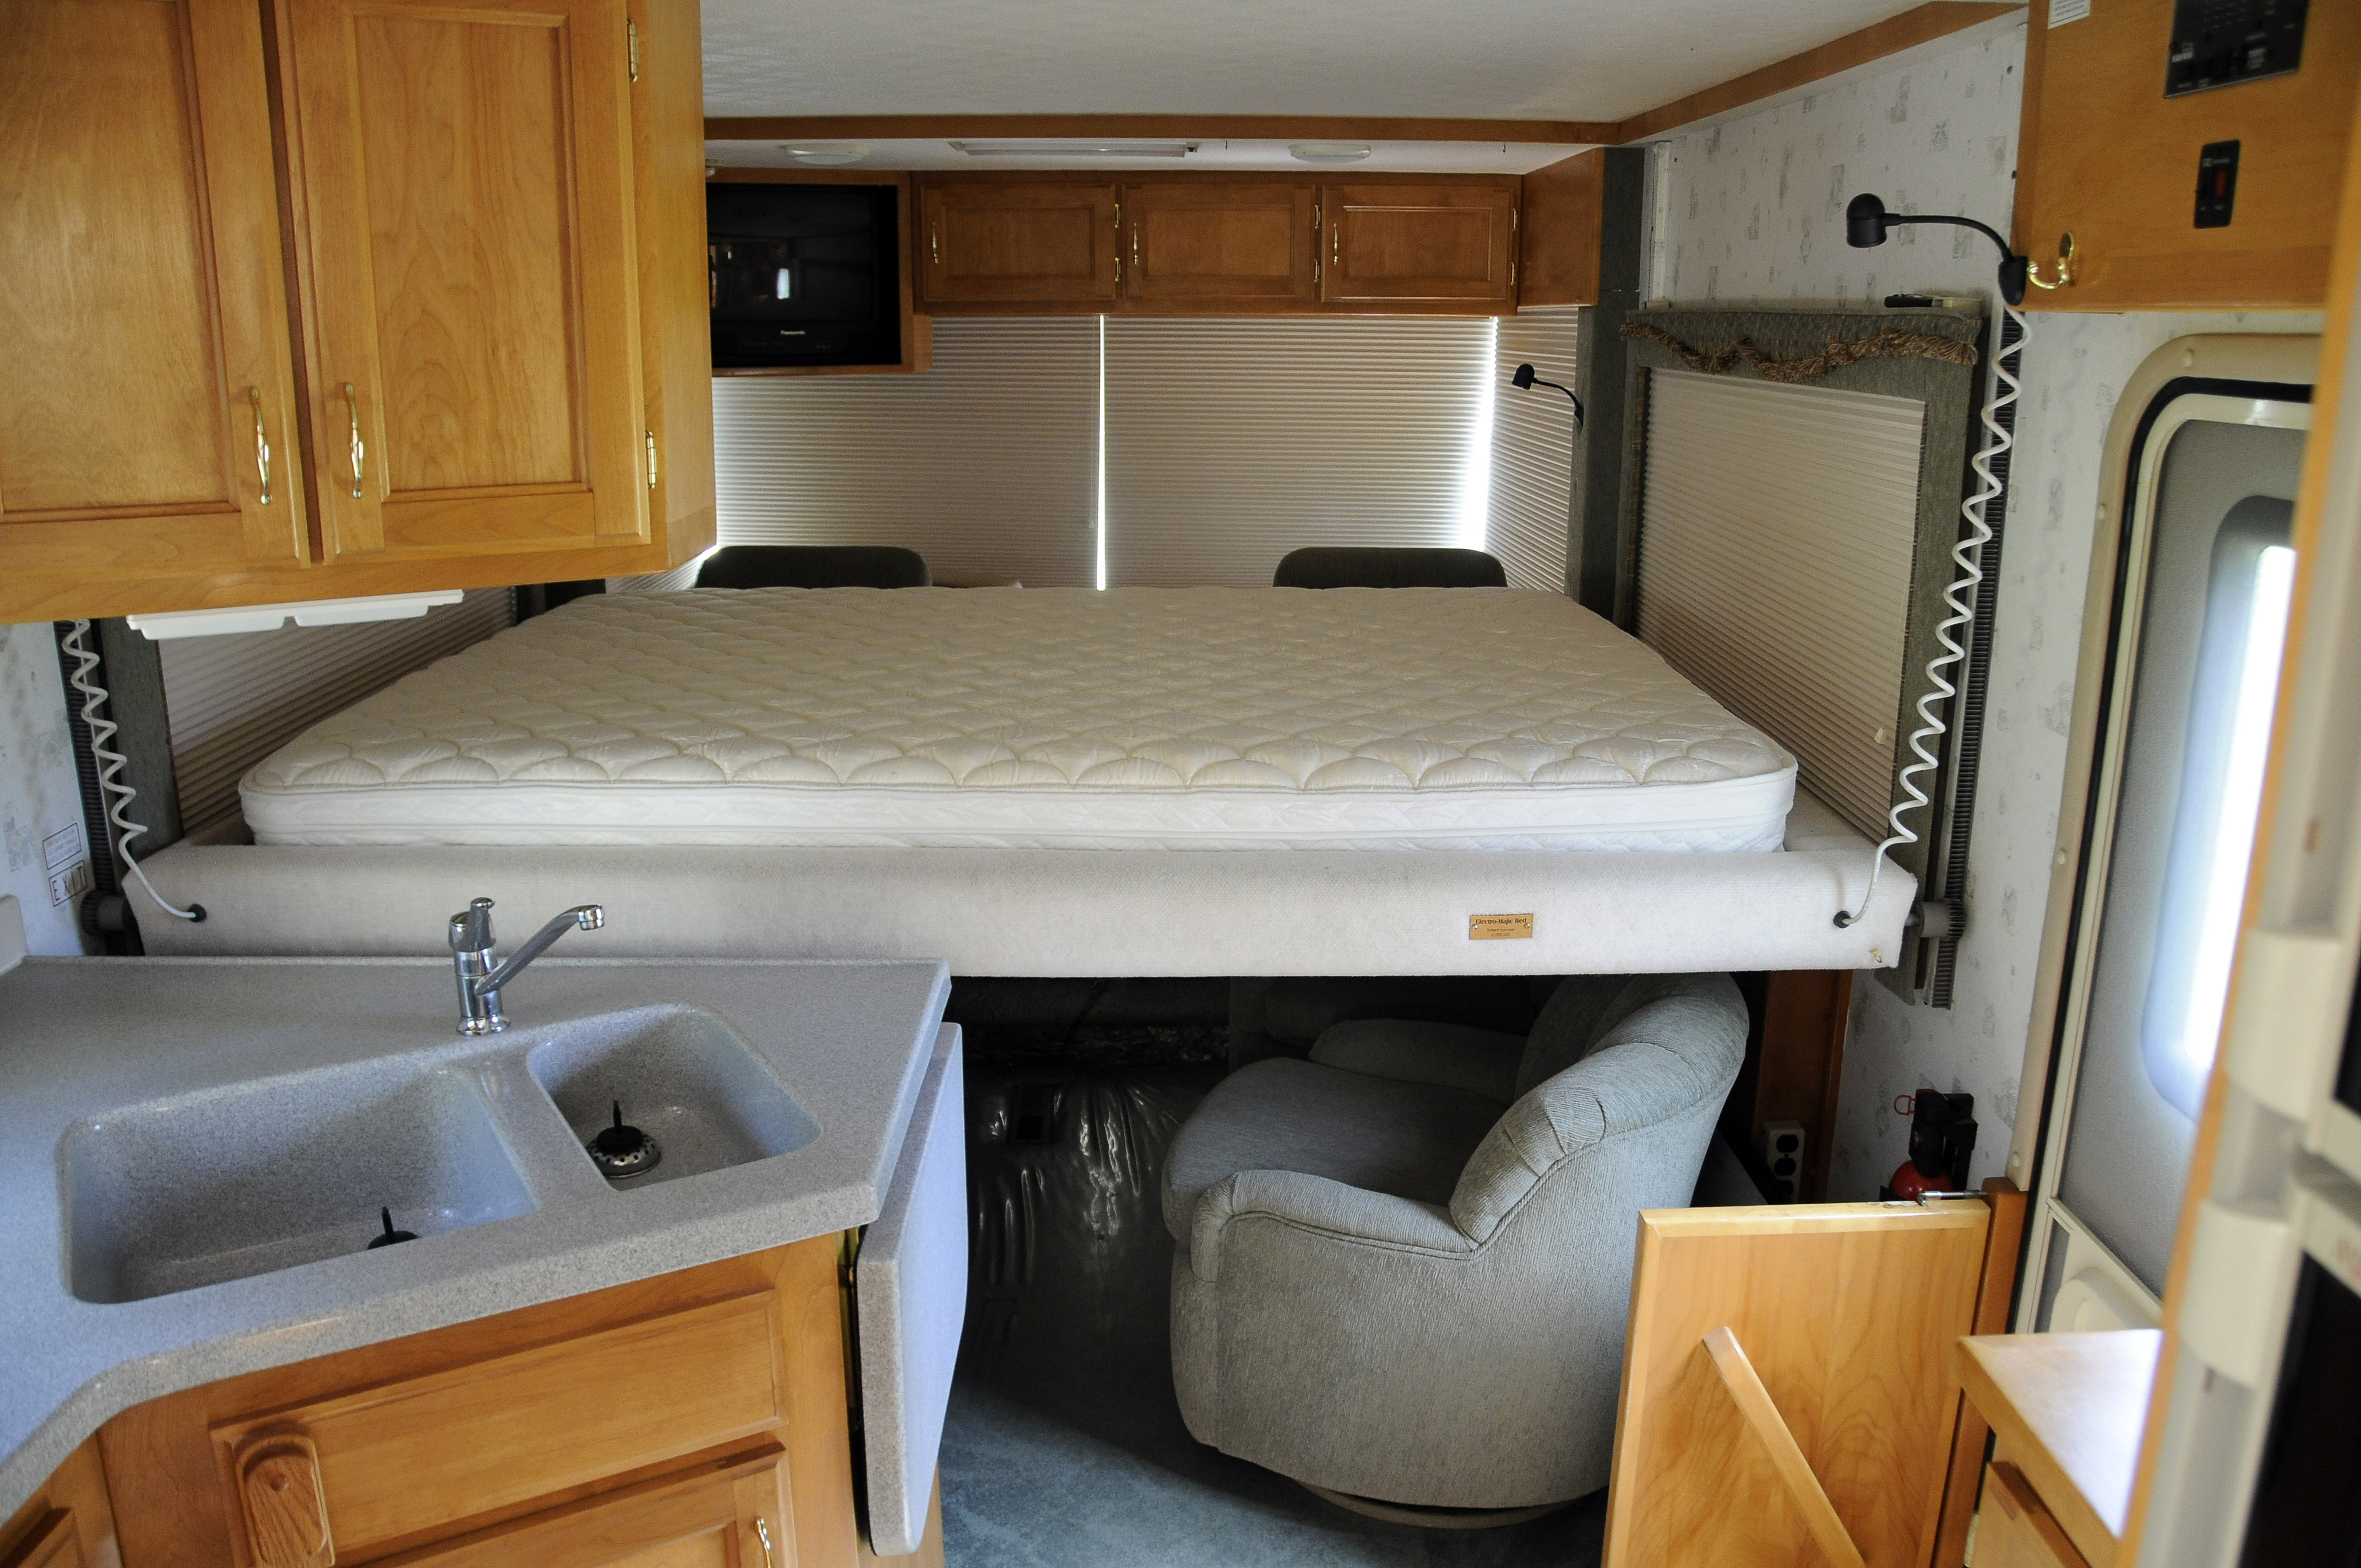 Pictures Inside Of Small Rv http://notenboom.org/2008/07/for_sale_1999_s.html